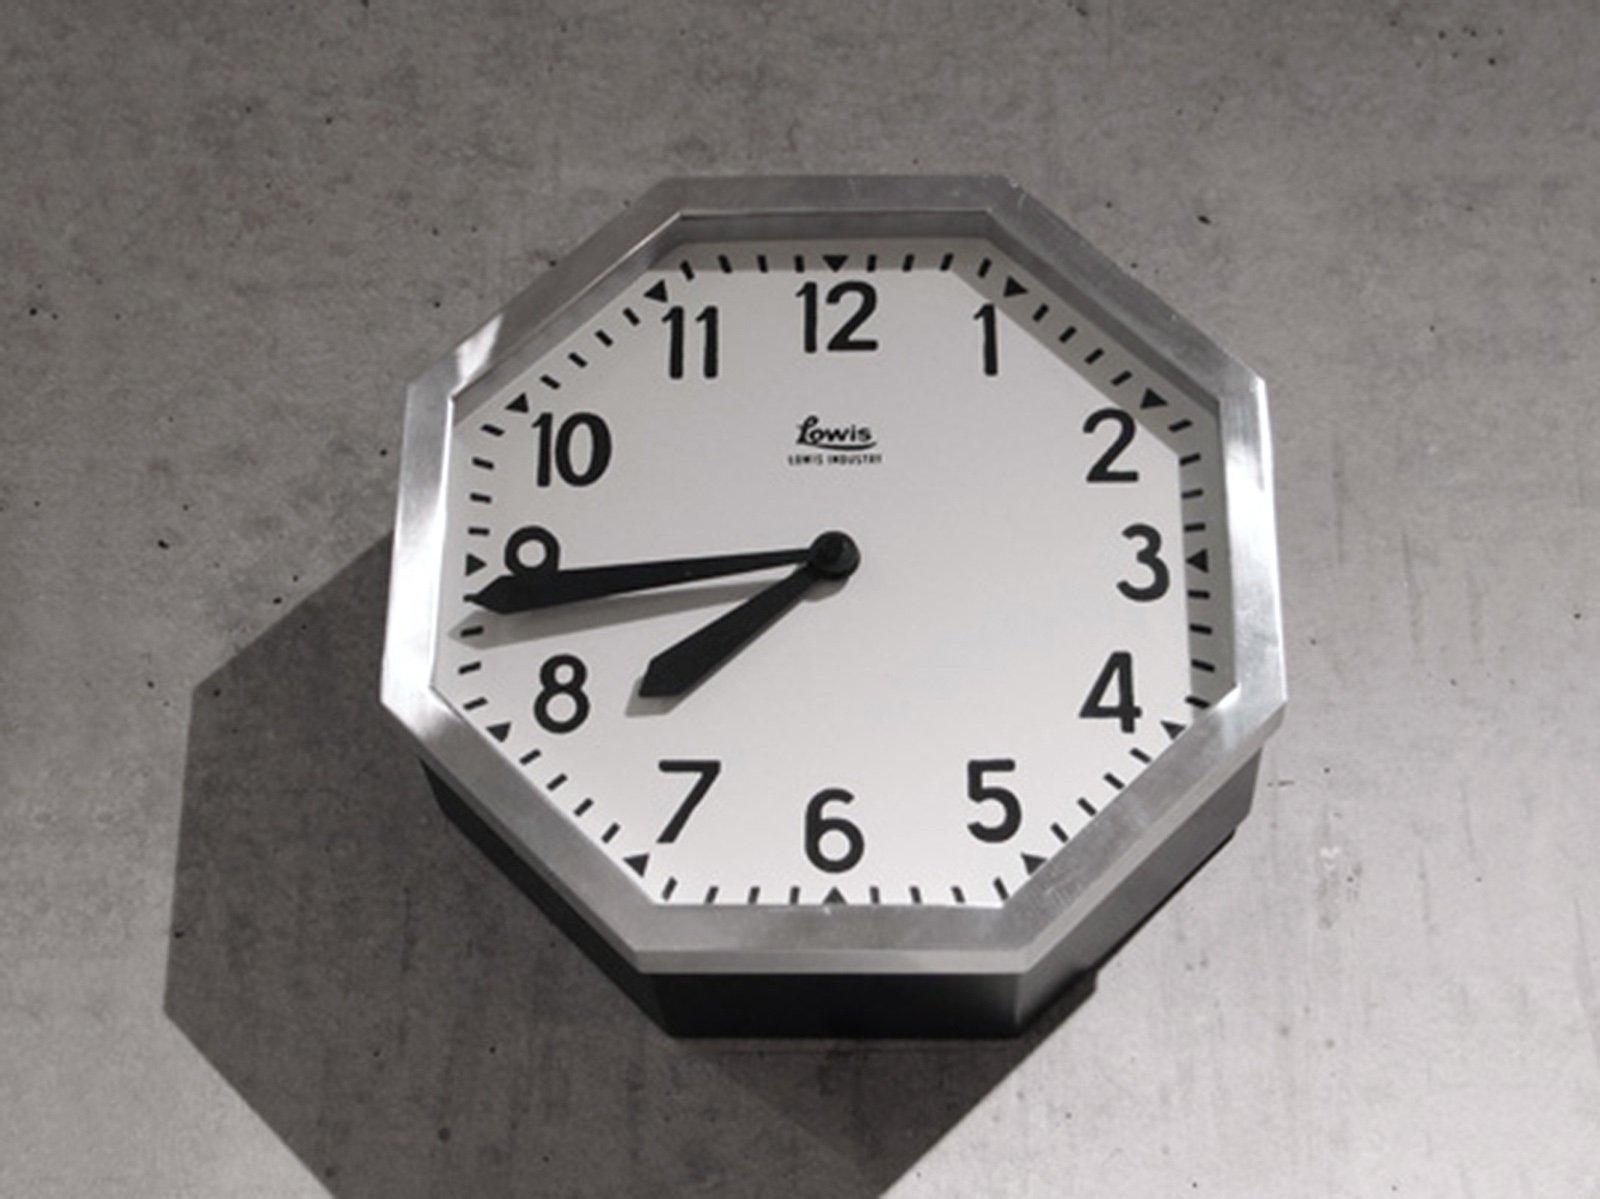 DETAIL/Lowis Industry Octagon Clock ルイスインダストリーオクタゴンクロック 壁掛け時計【送料無料】【画像3】